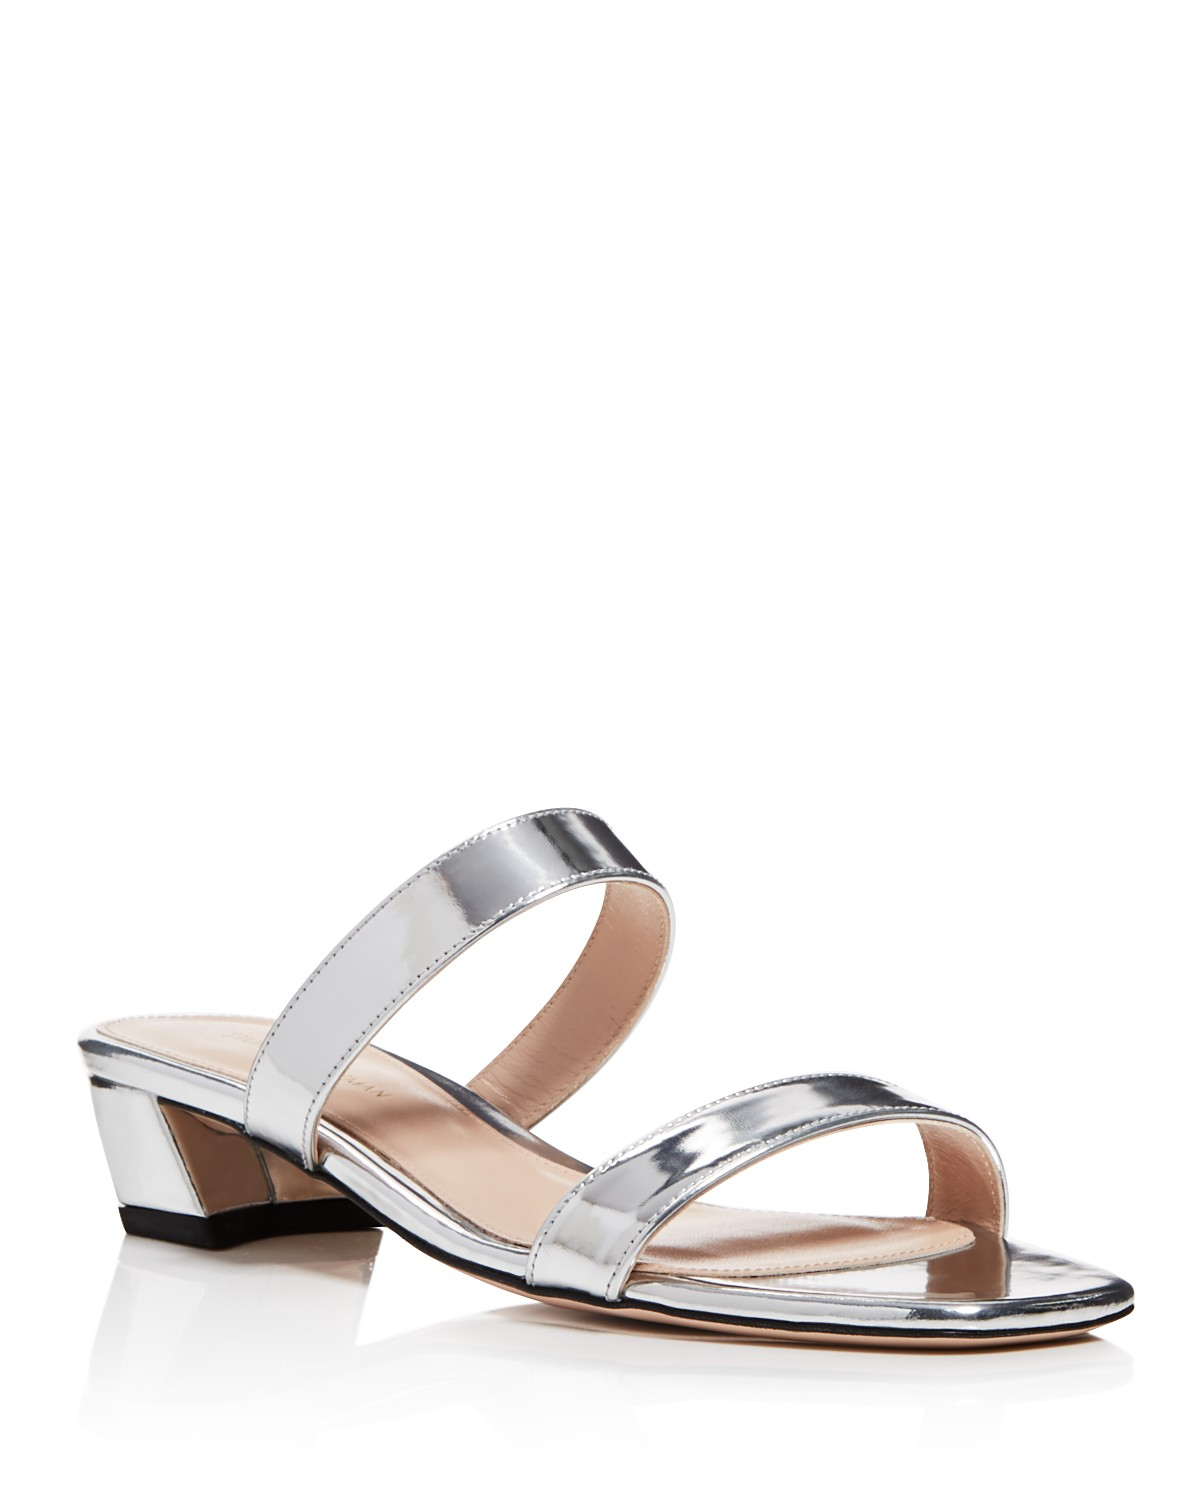 Stuart Weitzman Women's Ava Patent Leather Slide Sandals 4vEYy2nZm